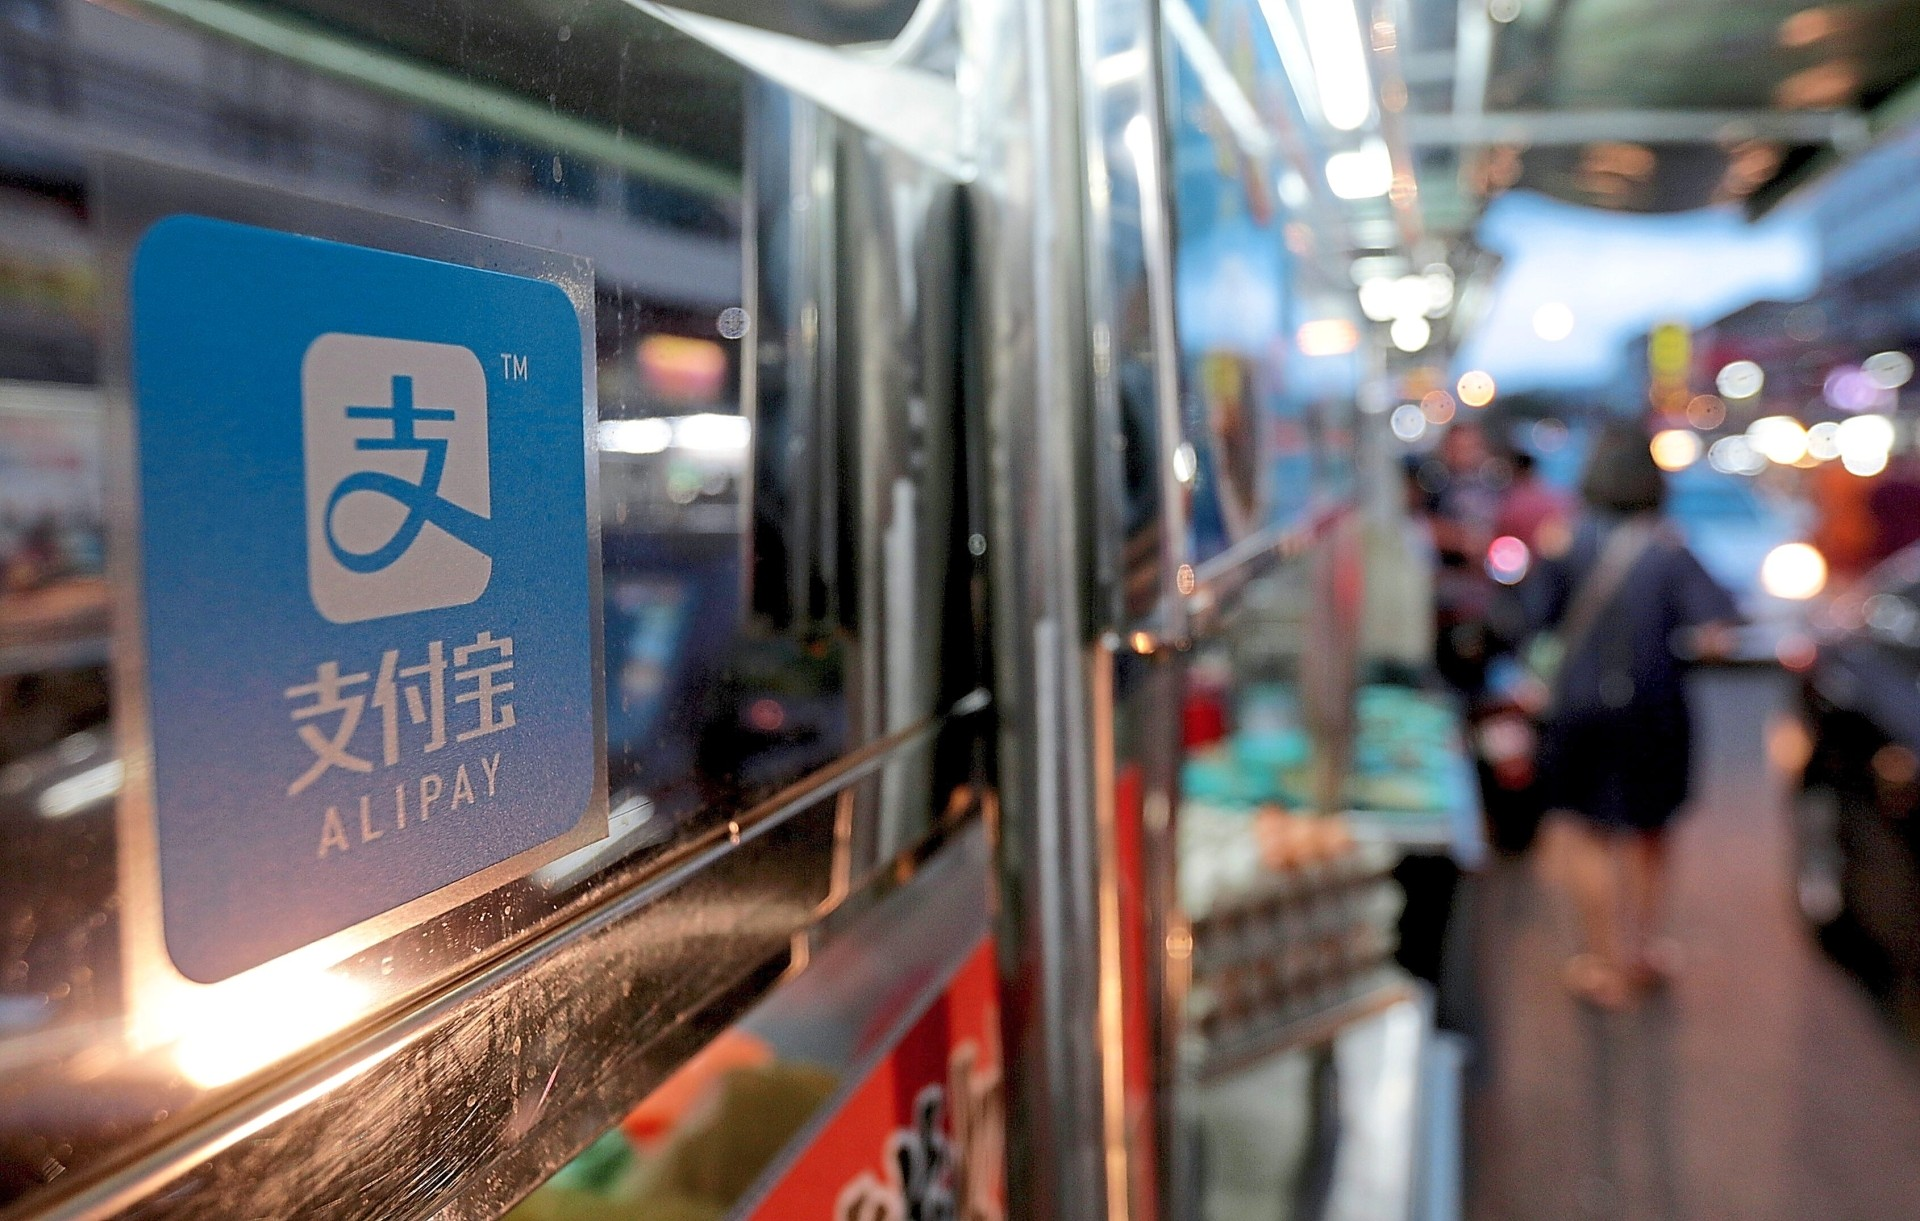 Alipay is now finally available to short-term visitors to China. — ZHAFARAN NASIB/The Star